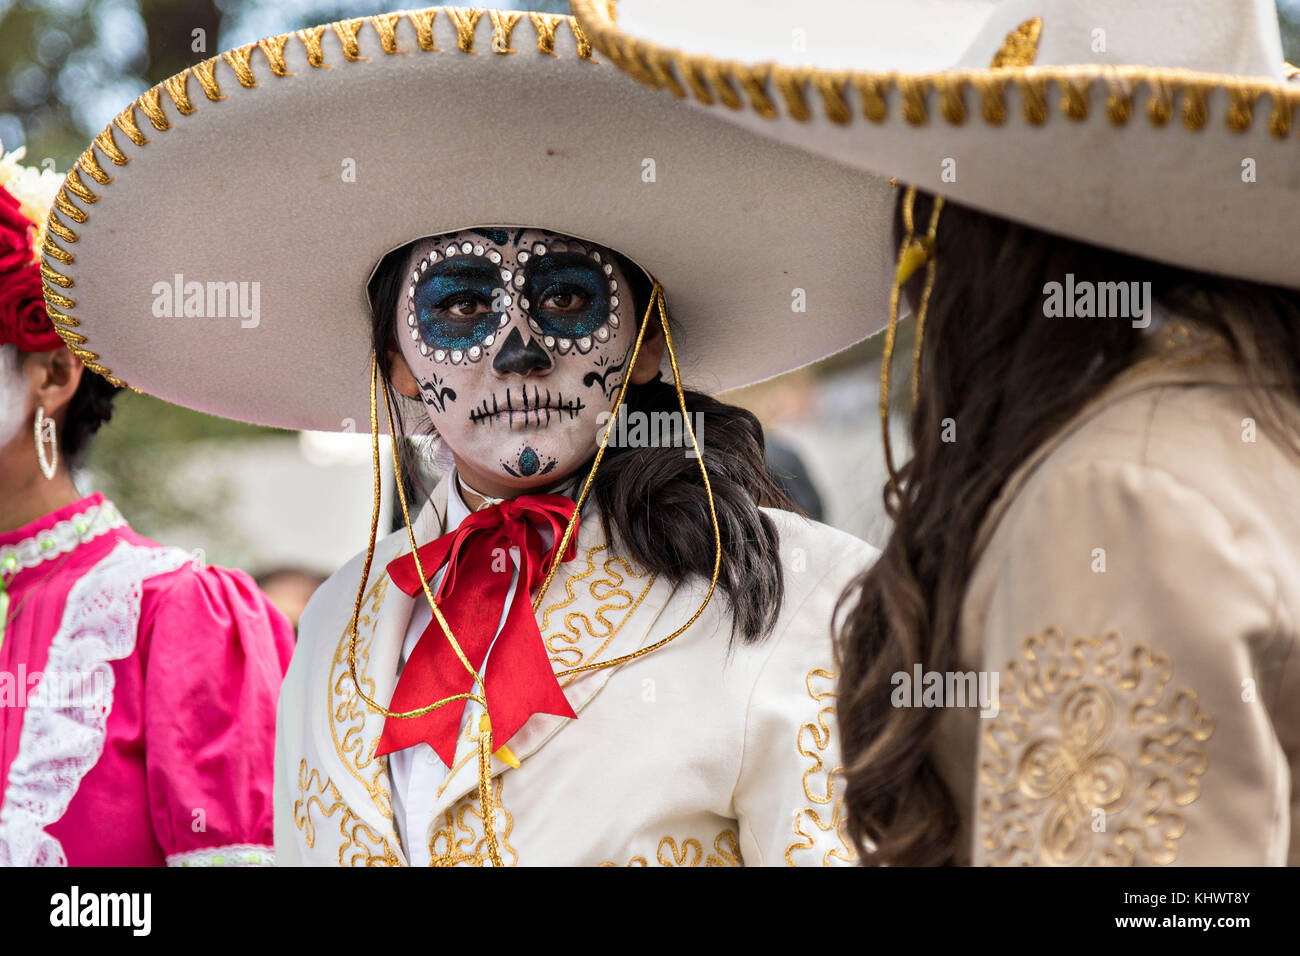 A Young Woman Dressed In La Calavera Catrina Costume During